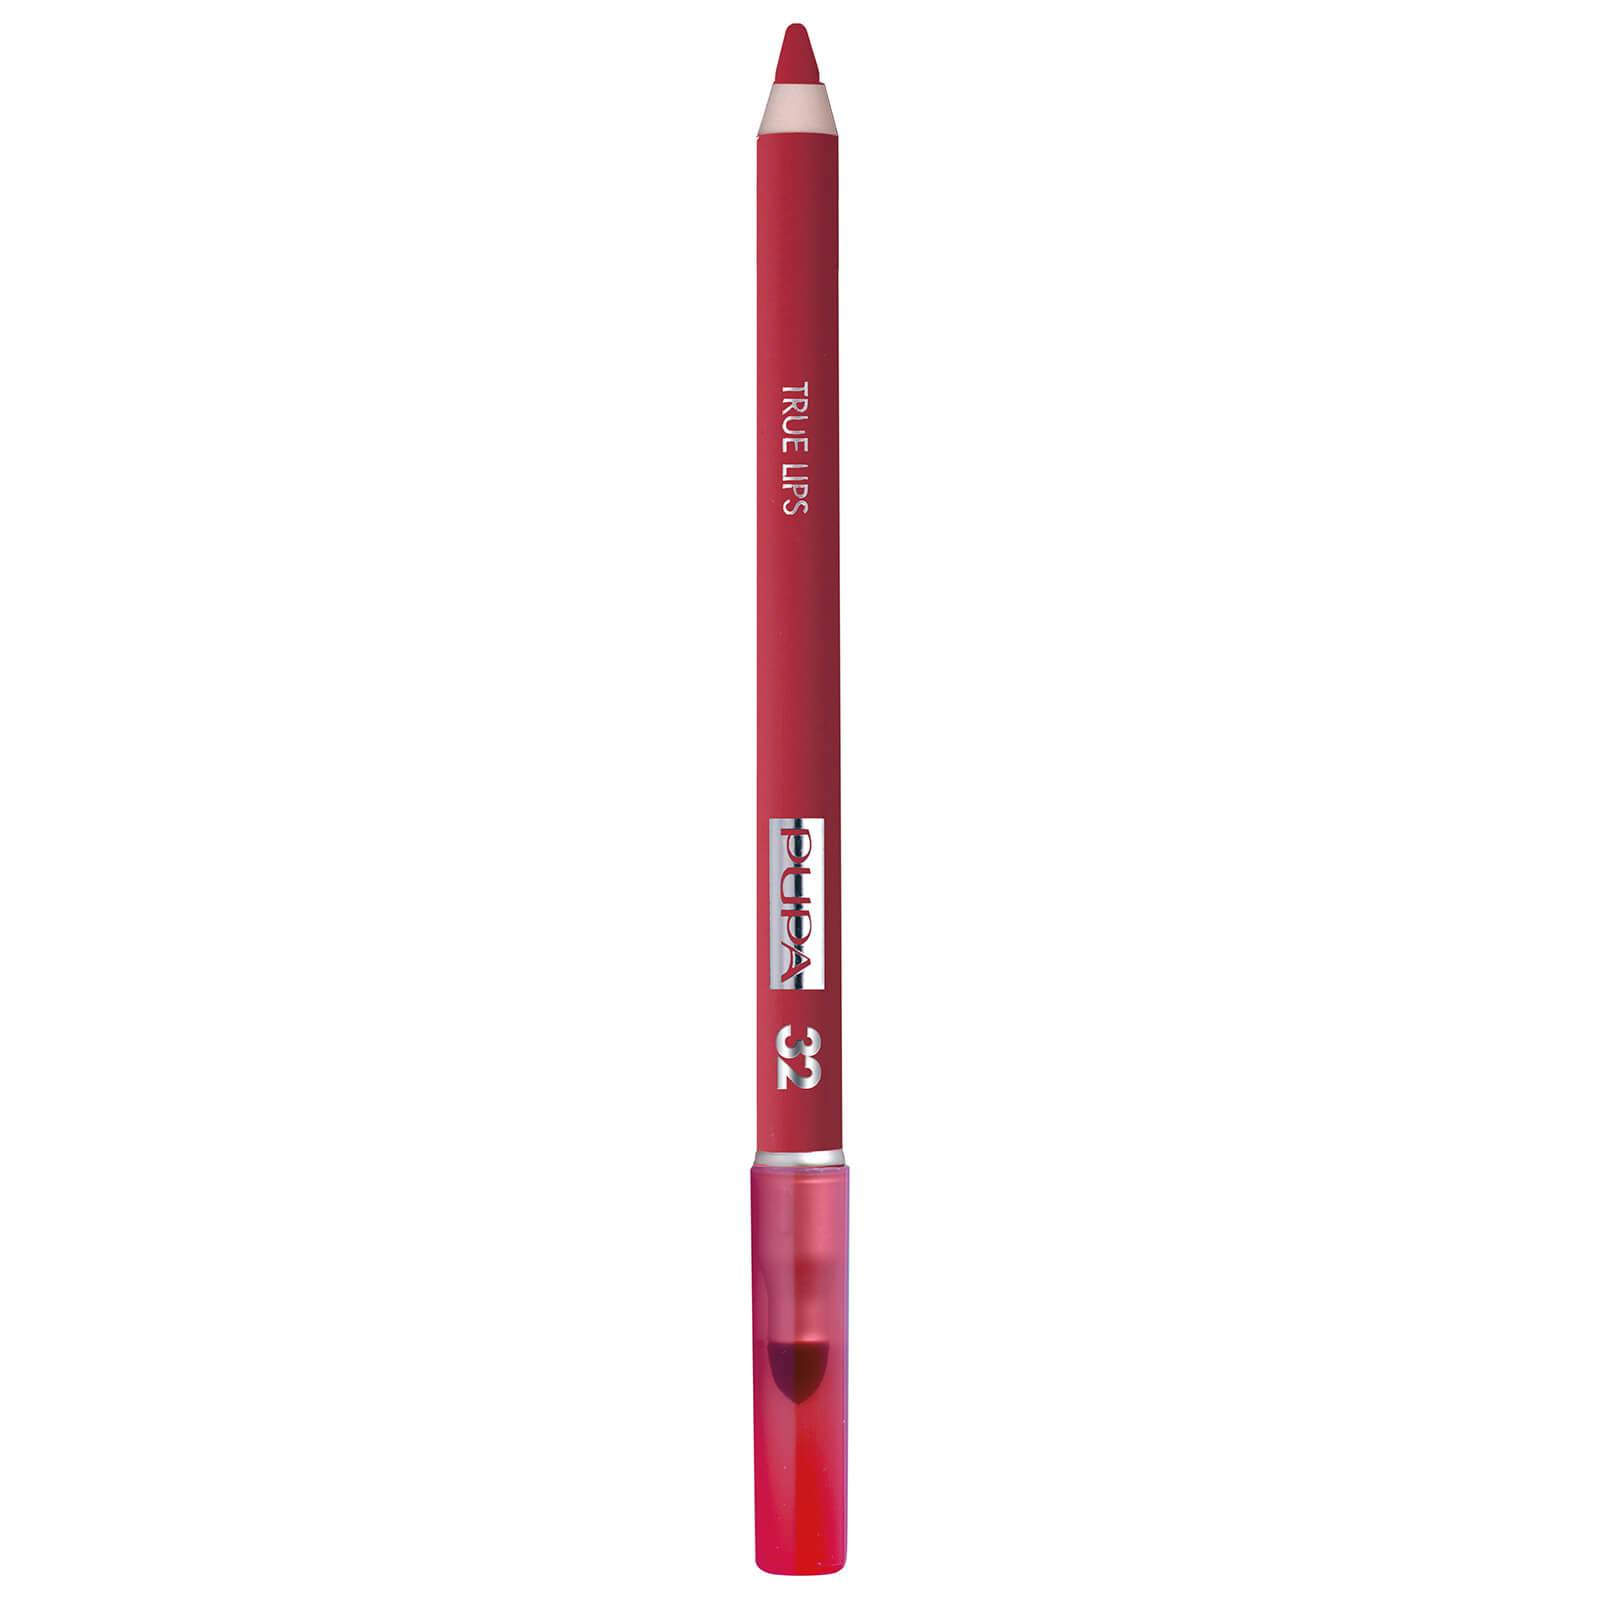 PUPA True Lips Blendable Lip Liner Pencil (Various Shades) - Strawberry Red